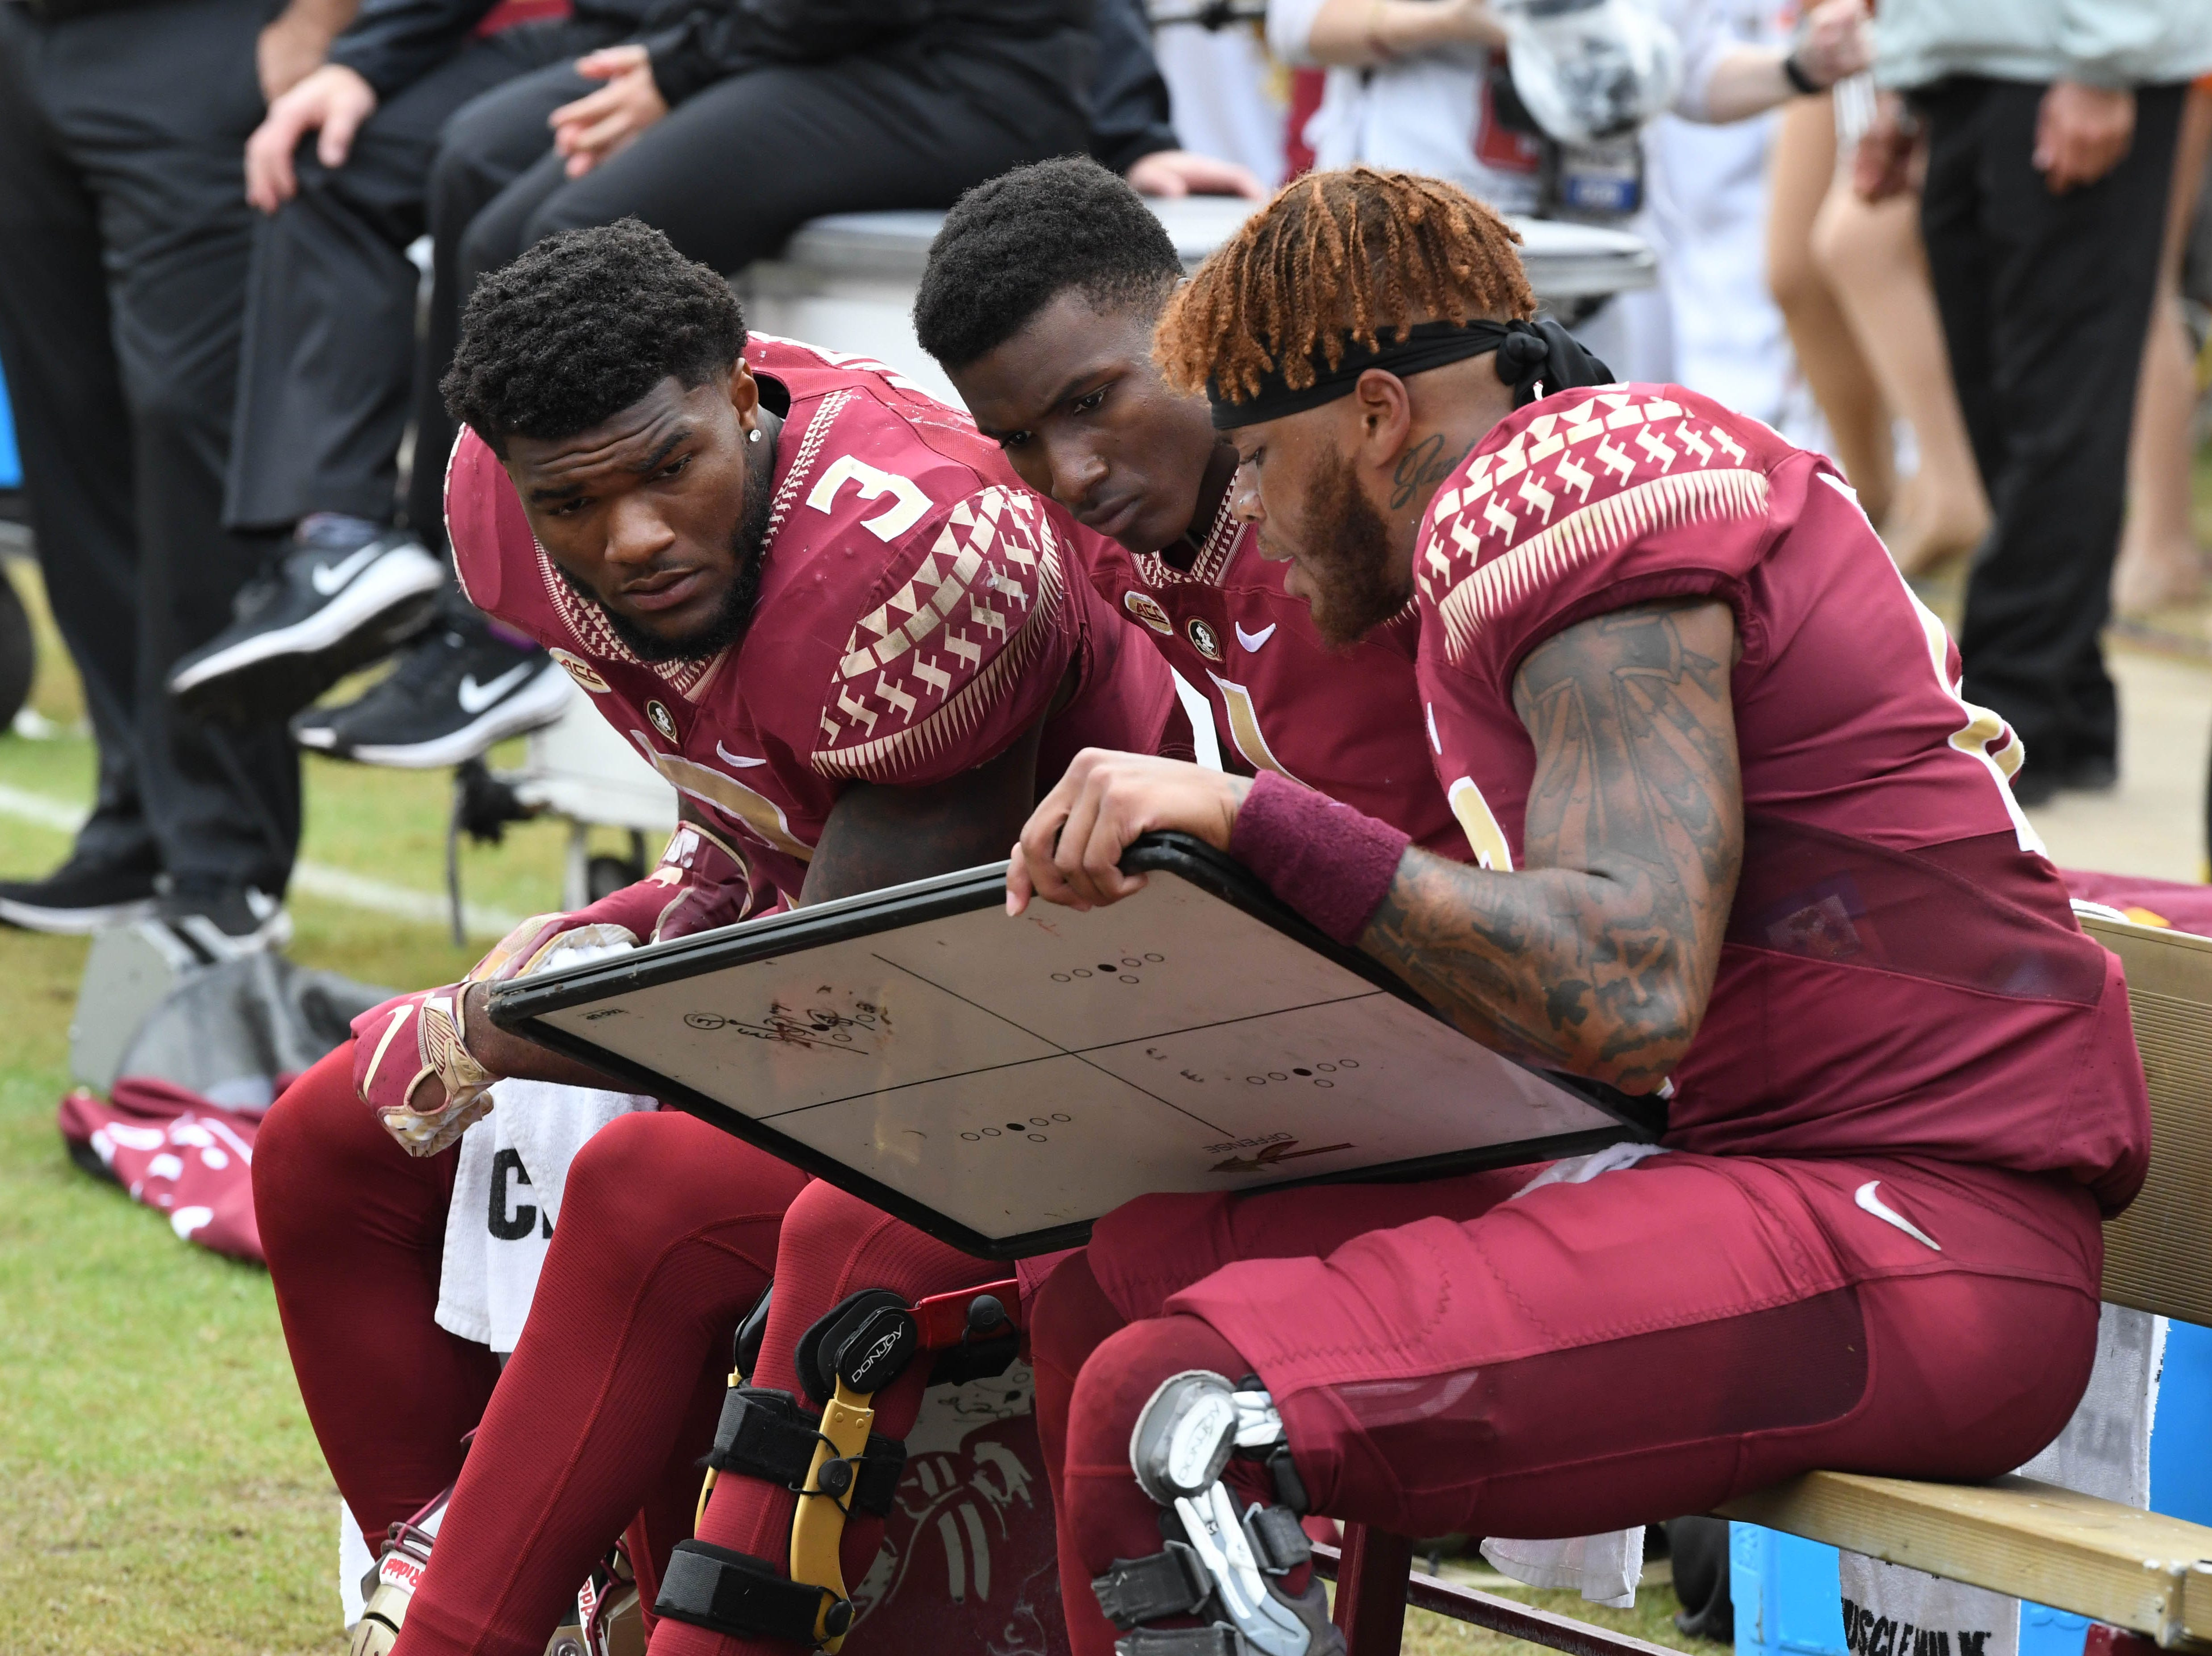 FSU redshirt junior quarter back Deondre Francois (12) drawing out a play in the third quarter of the FSU game against UF at Doak Campbell Stadium on Novemeber 24, 2018.